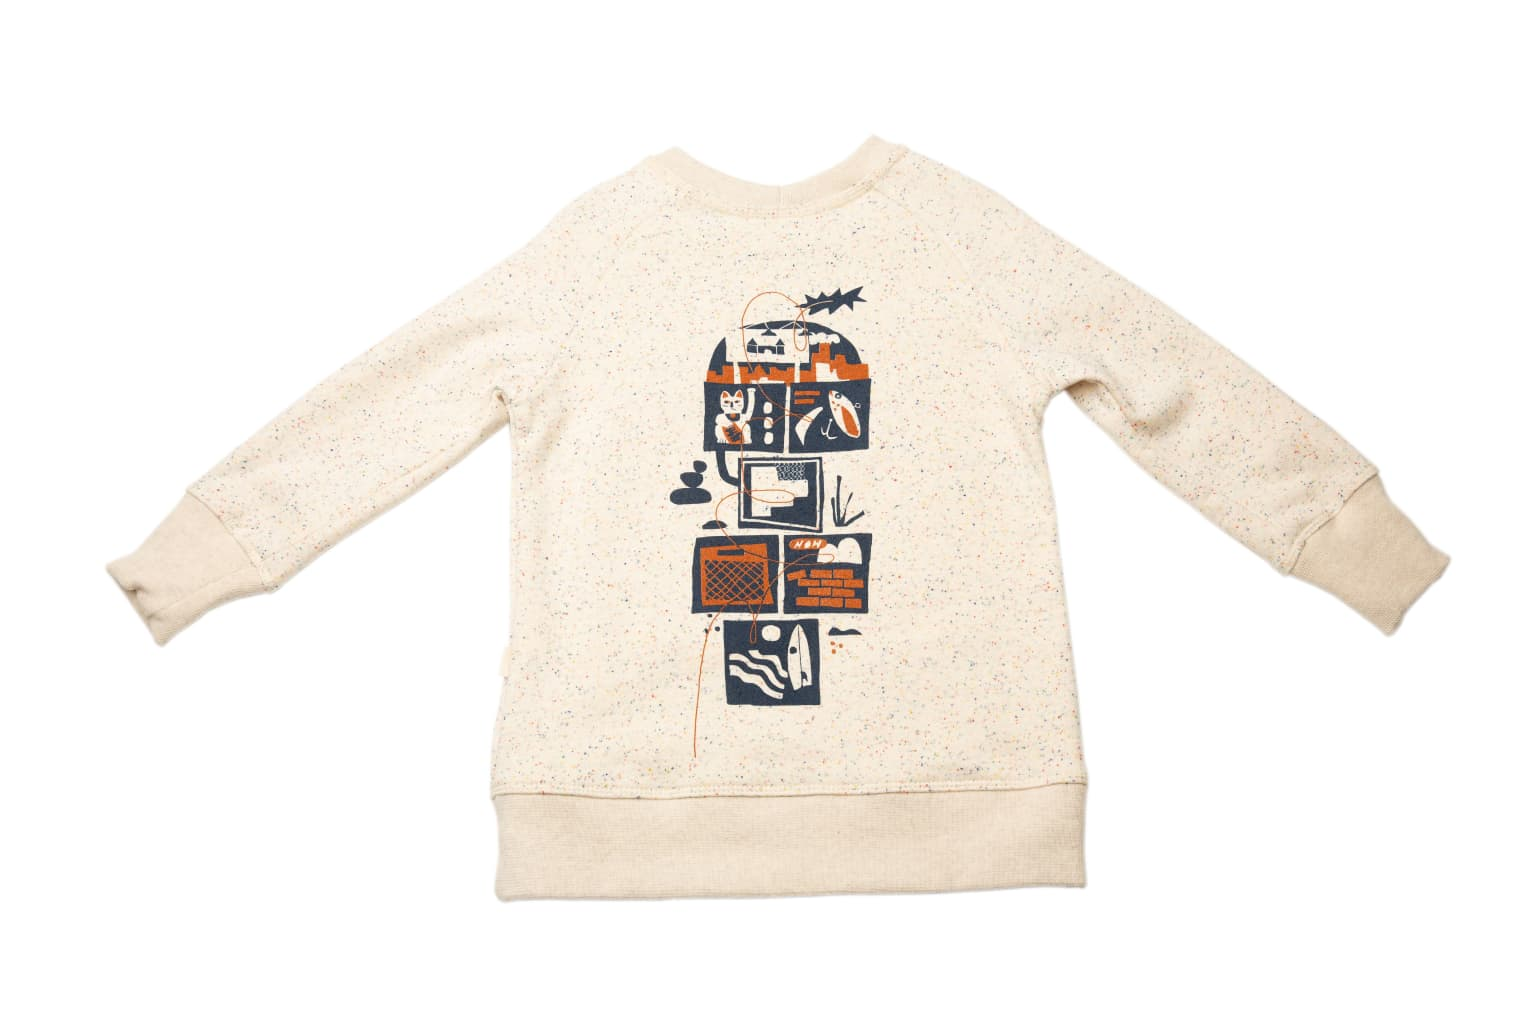 Fort Kids Clothing